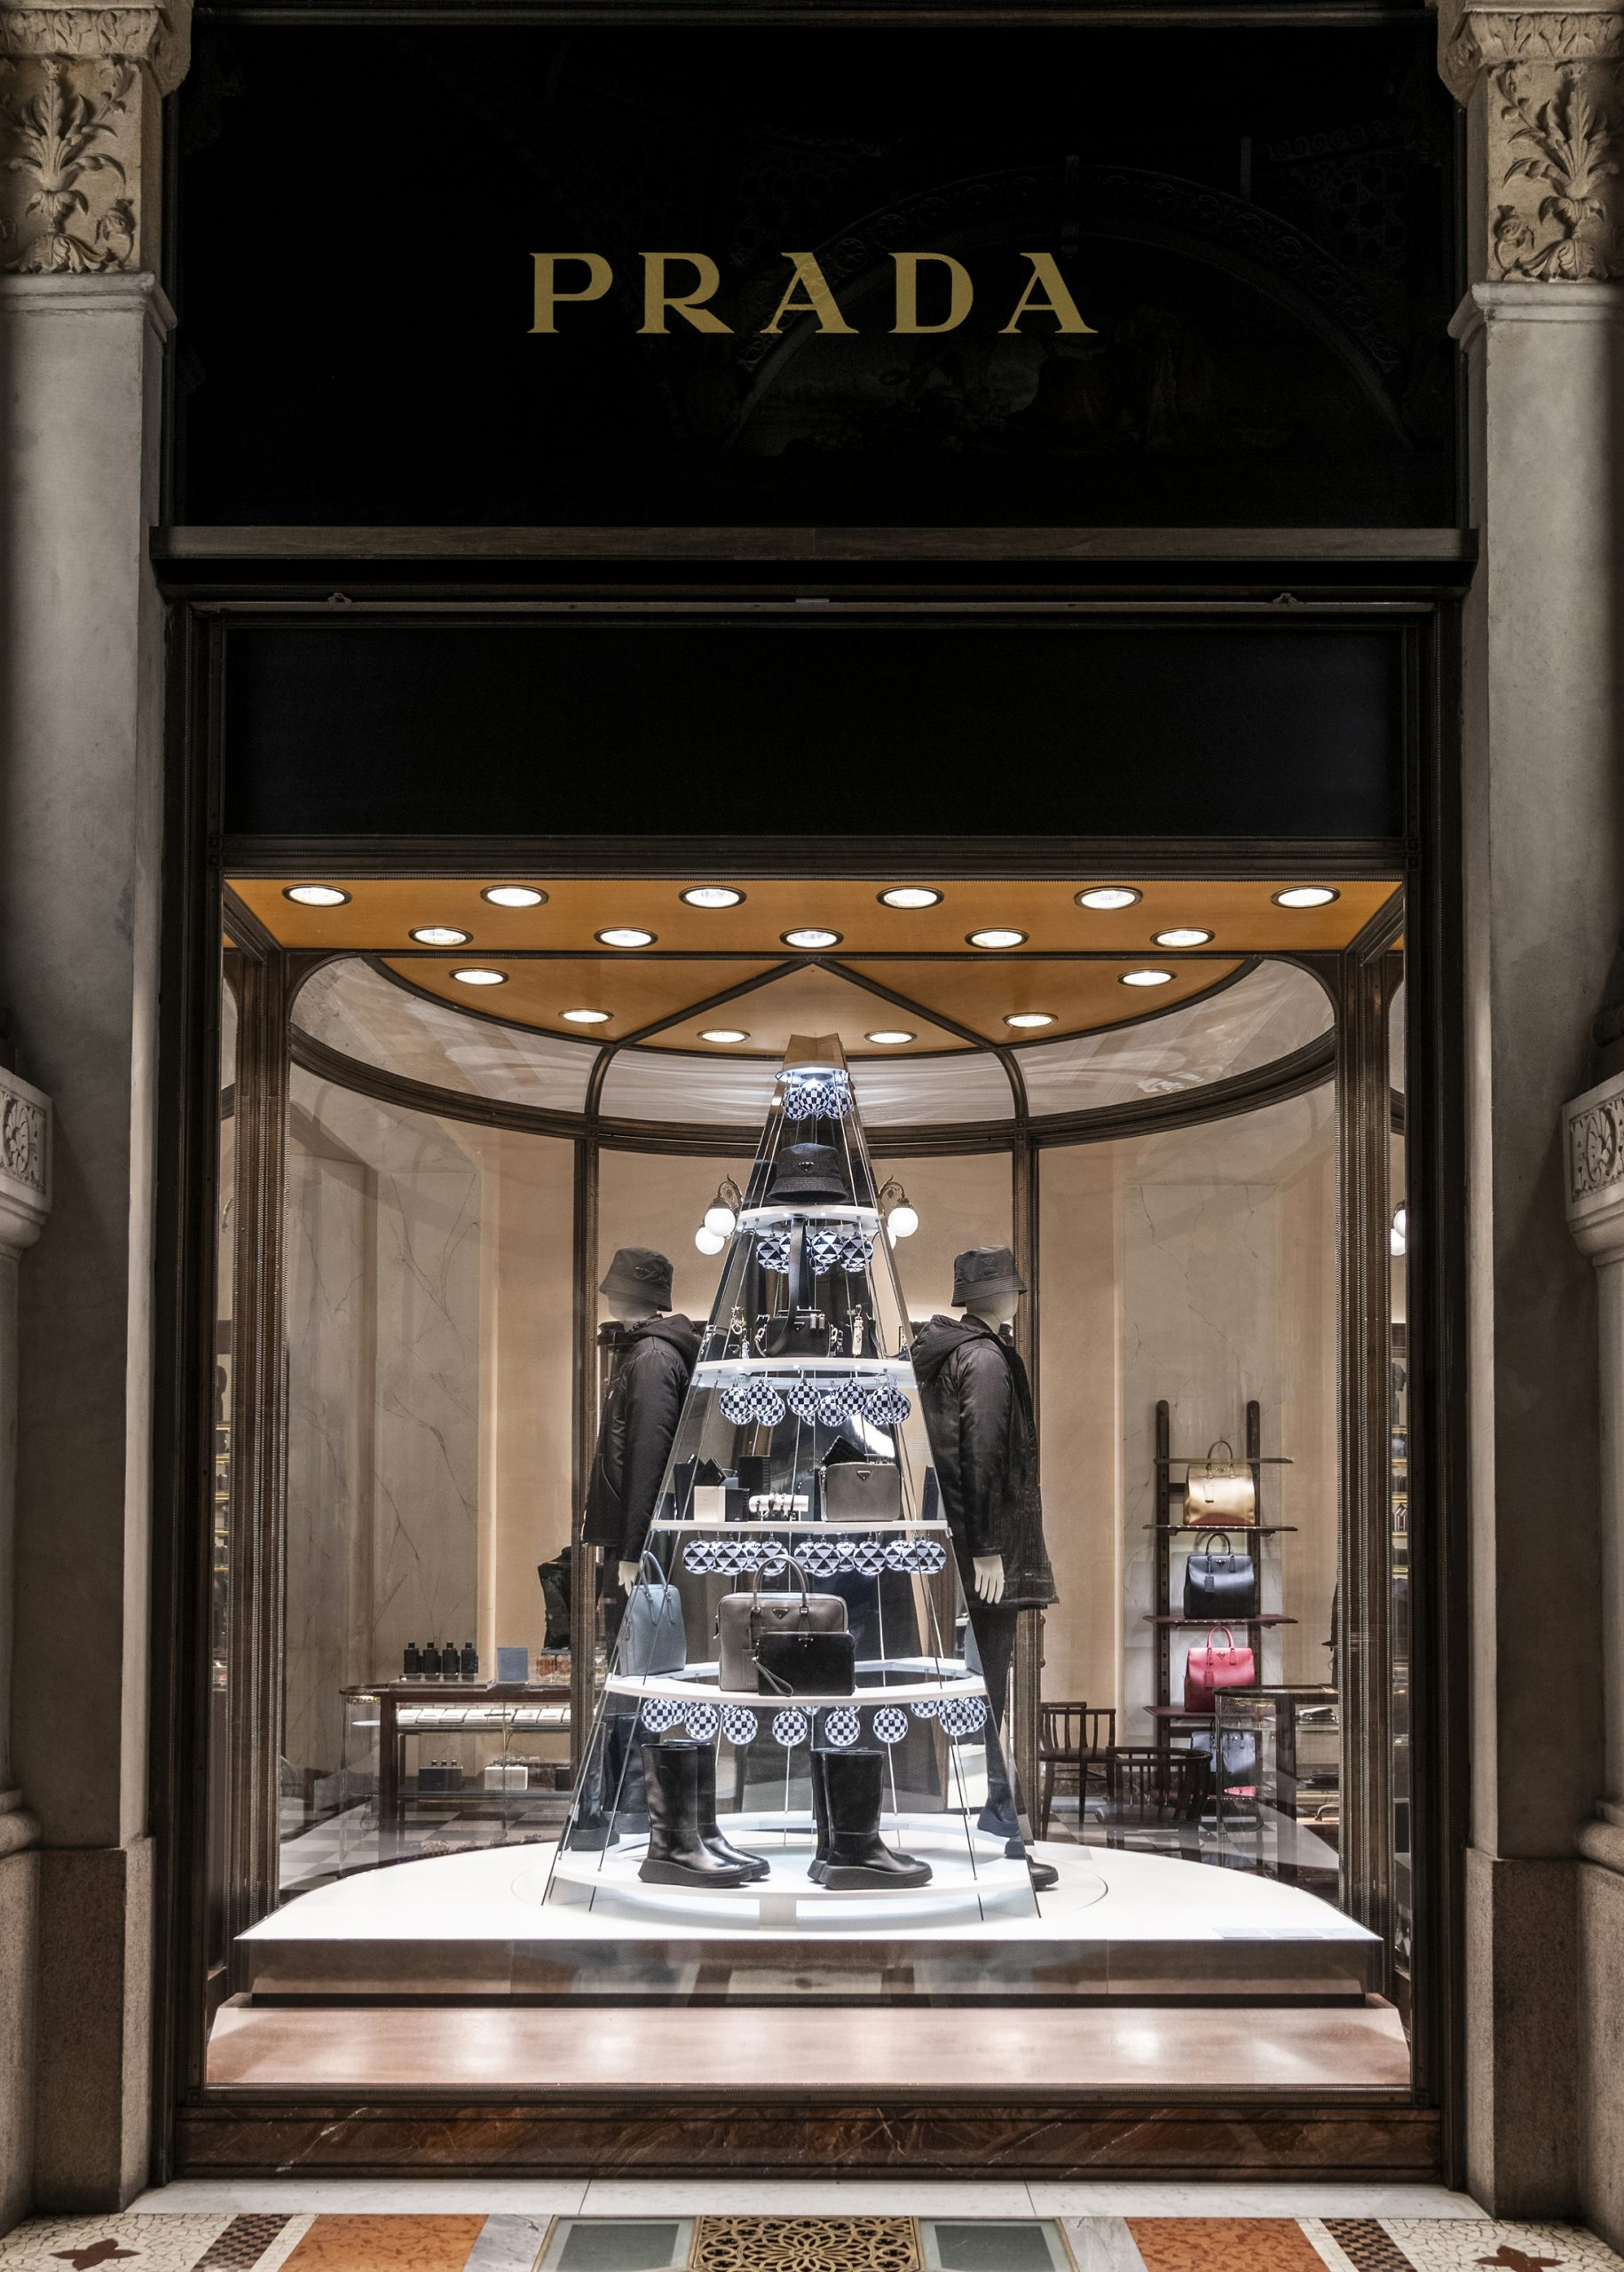 Prada's Holiday Windows